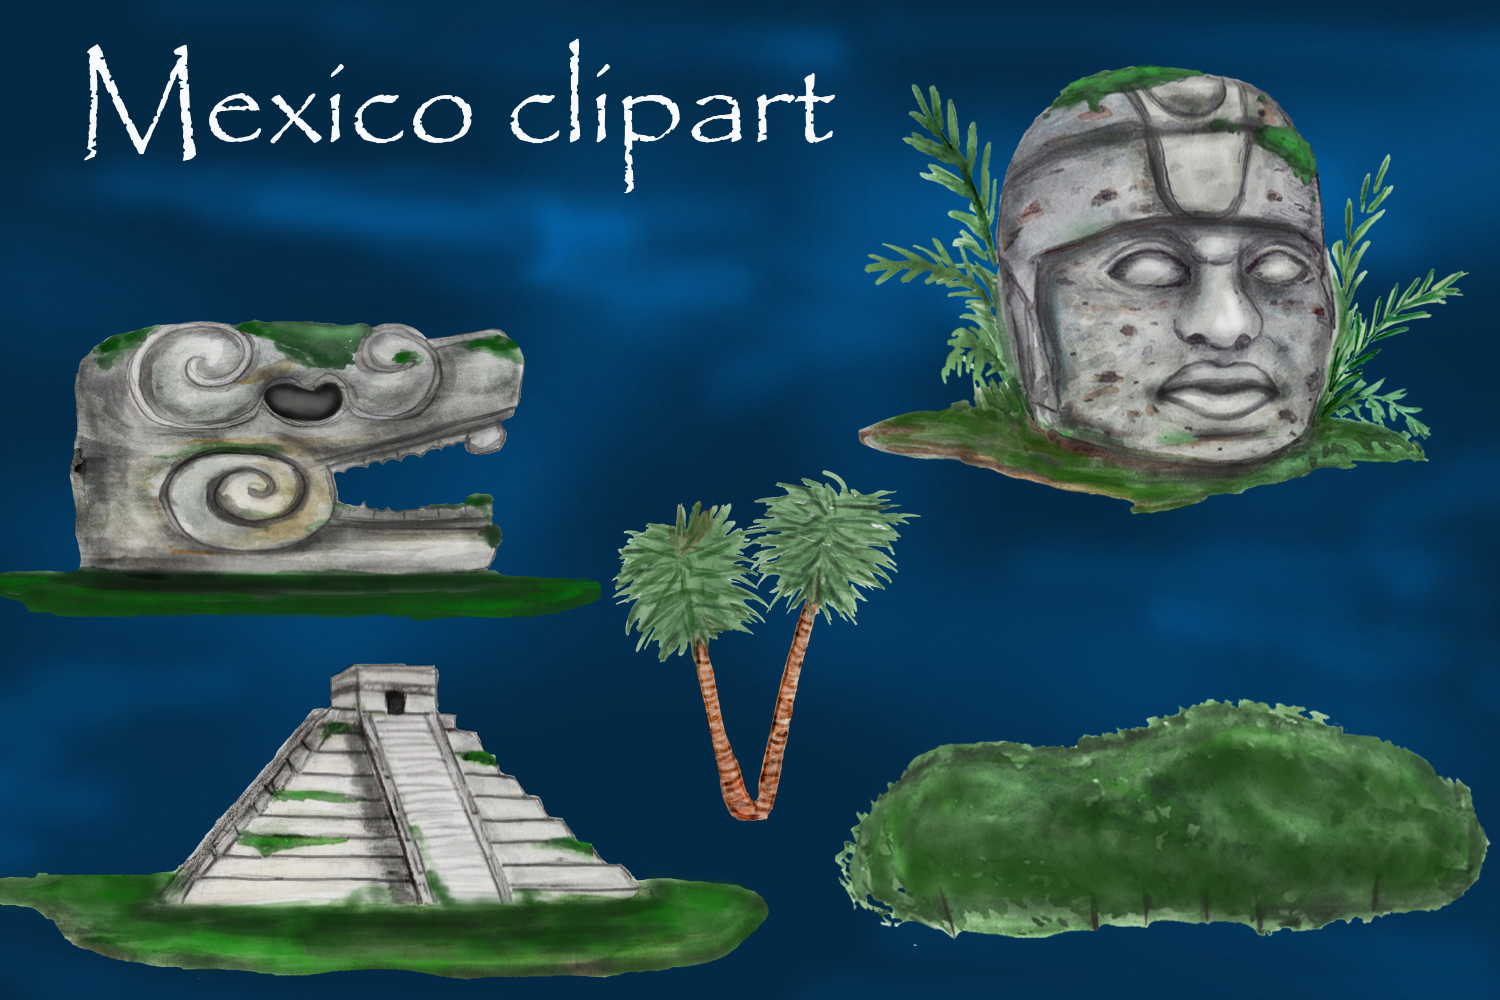 Mayan clipart, ancient civilizations of Mexico watercolor example image 7